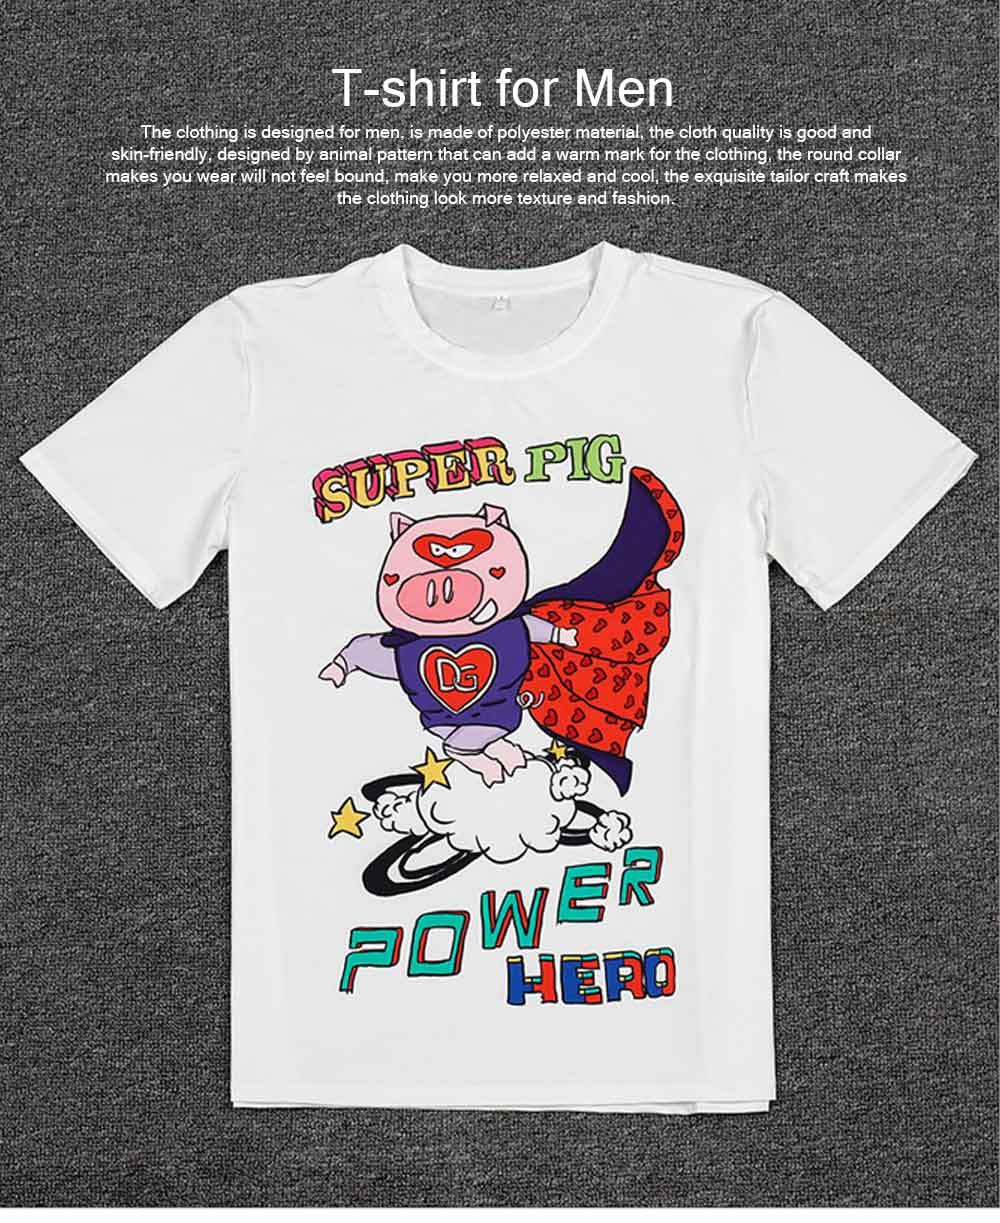 Polyester Spandex Material Male T-shirt with Supper Pig Pattern, Cotta Round Collar Fashionable Short Sleeve Shirt for Men 0